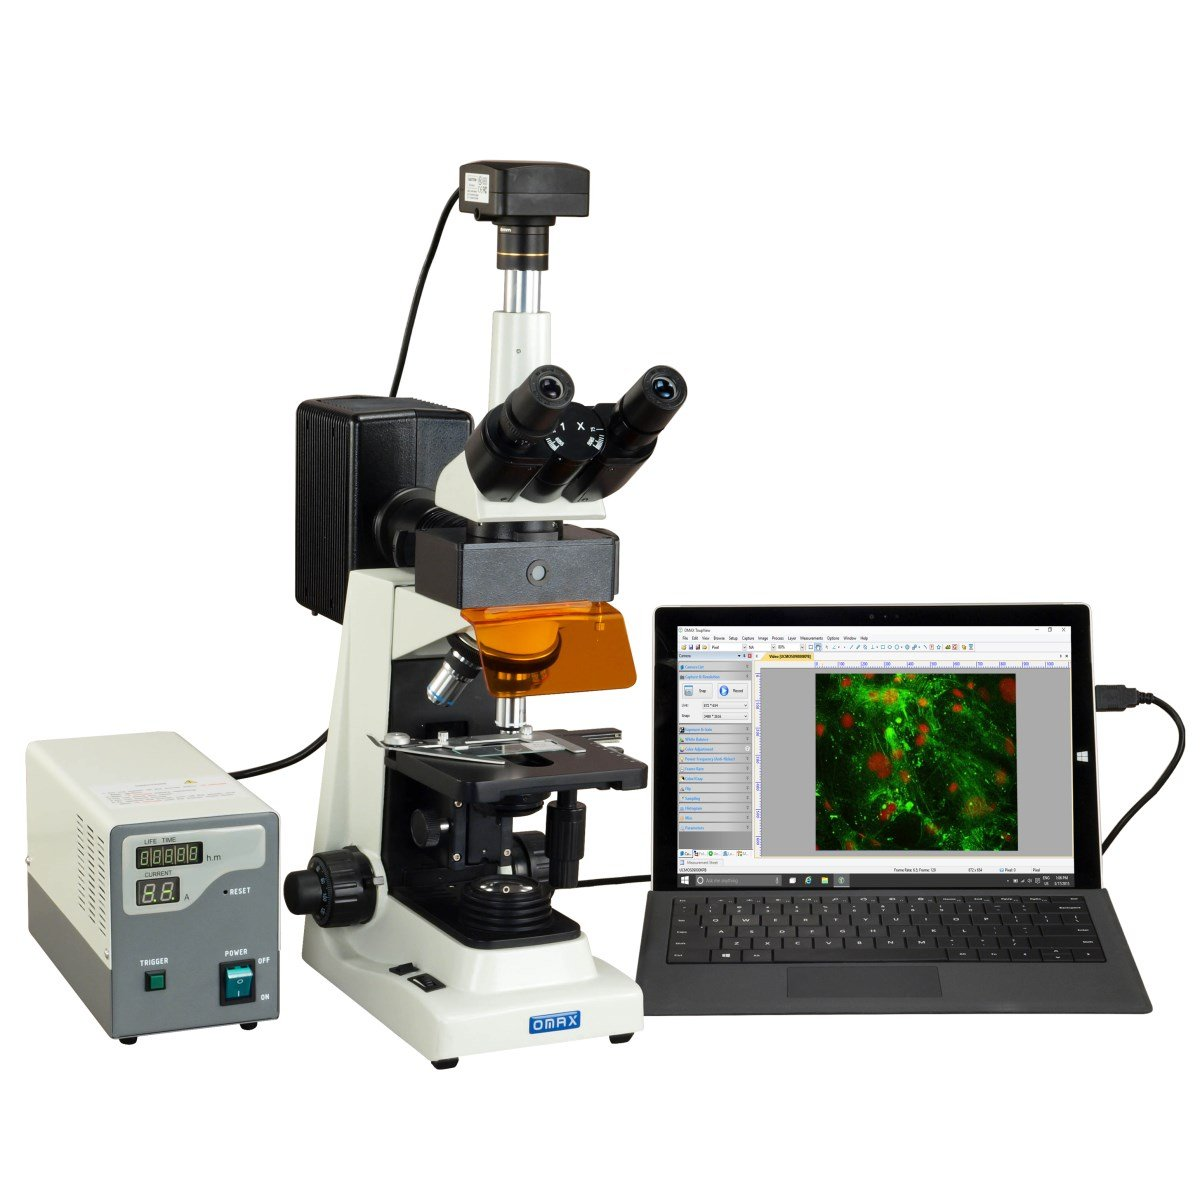 OMAX 40X1600X Professional USB3 10MP Trinocular EPIFluorescence Compound Biological Lab Microscope